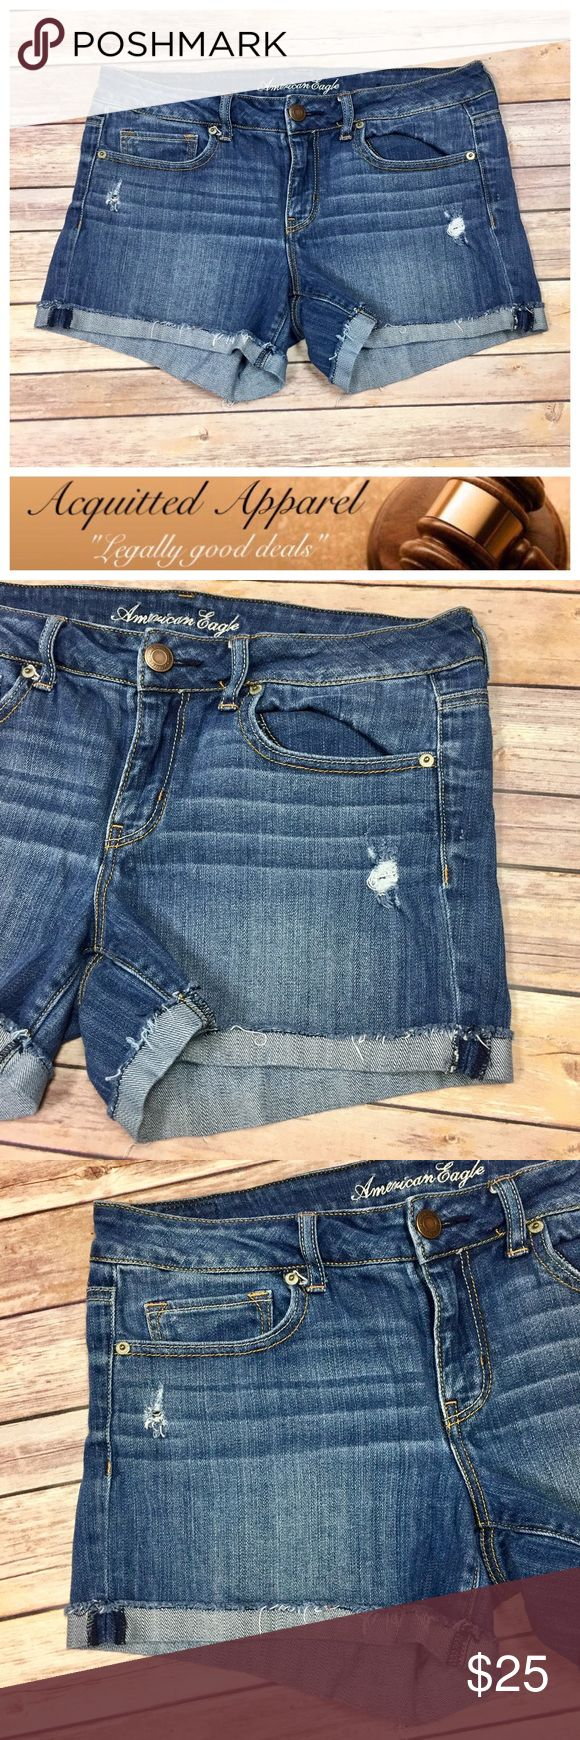 [AE] American Eagle Cuffed Denim Jean Shorts Beautiful like new condition. Light distressing. Size 12. American Eagle Outfitters Shorts Jean Shorts